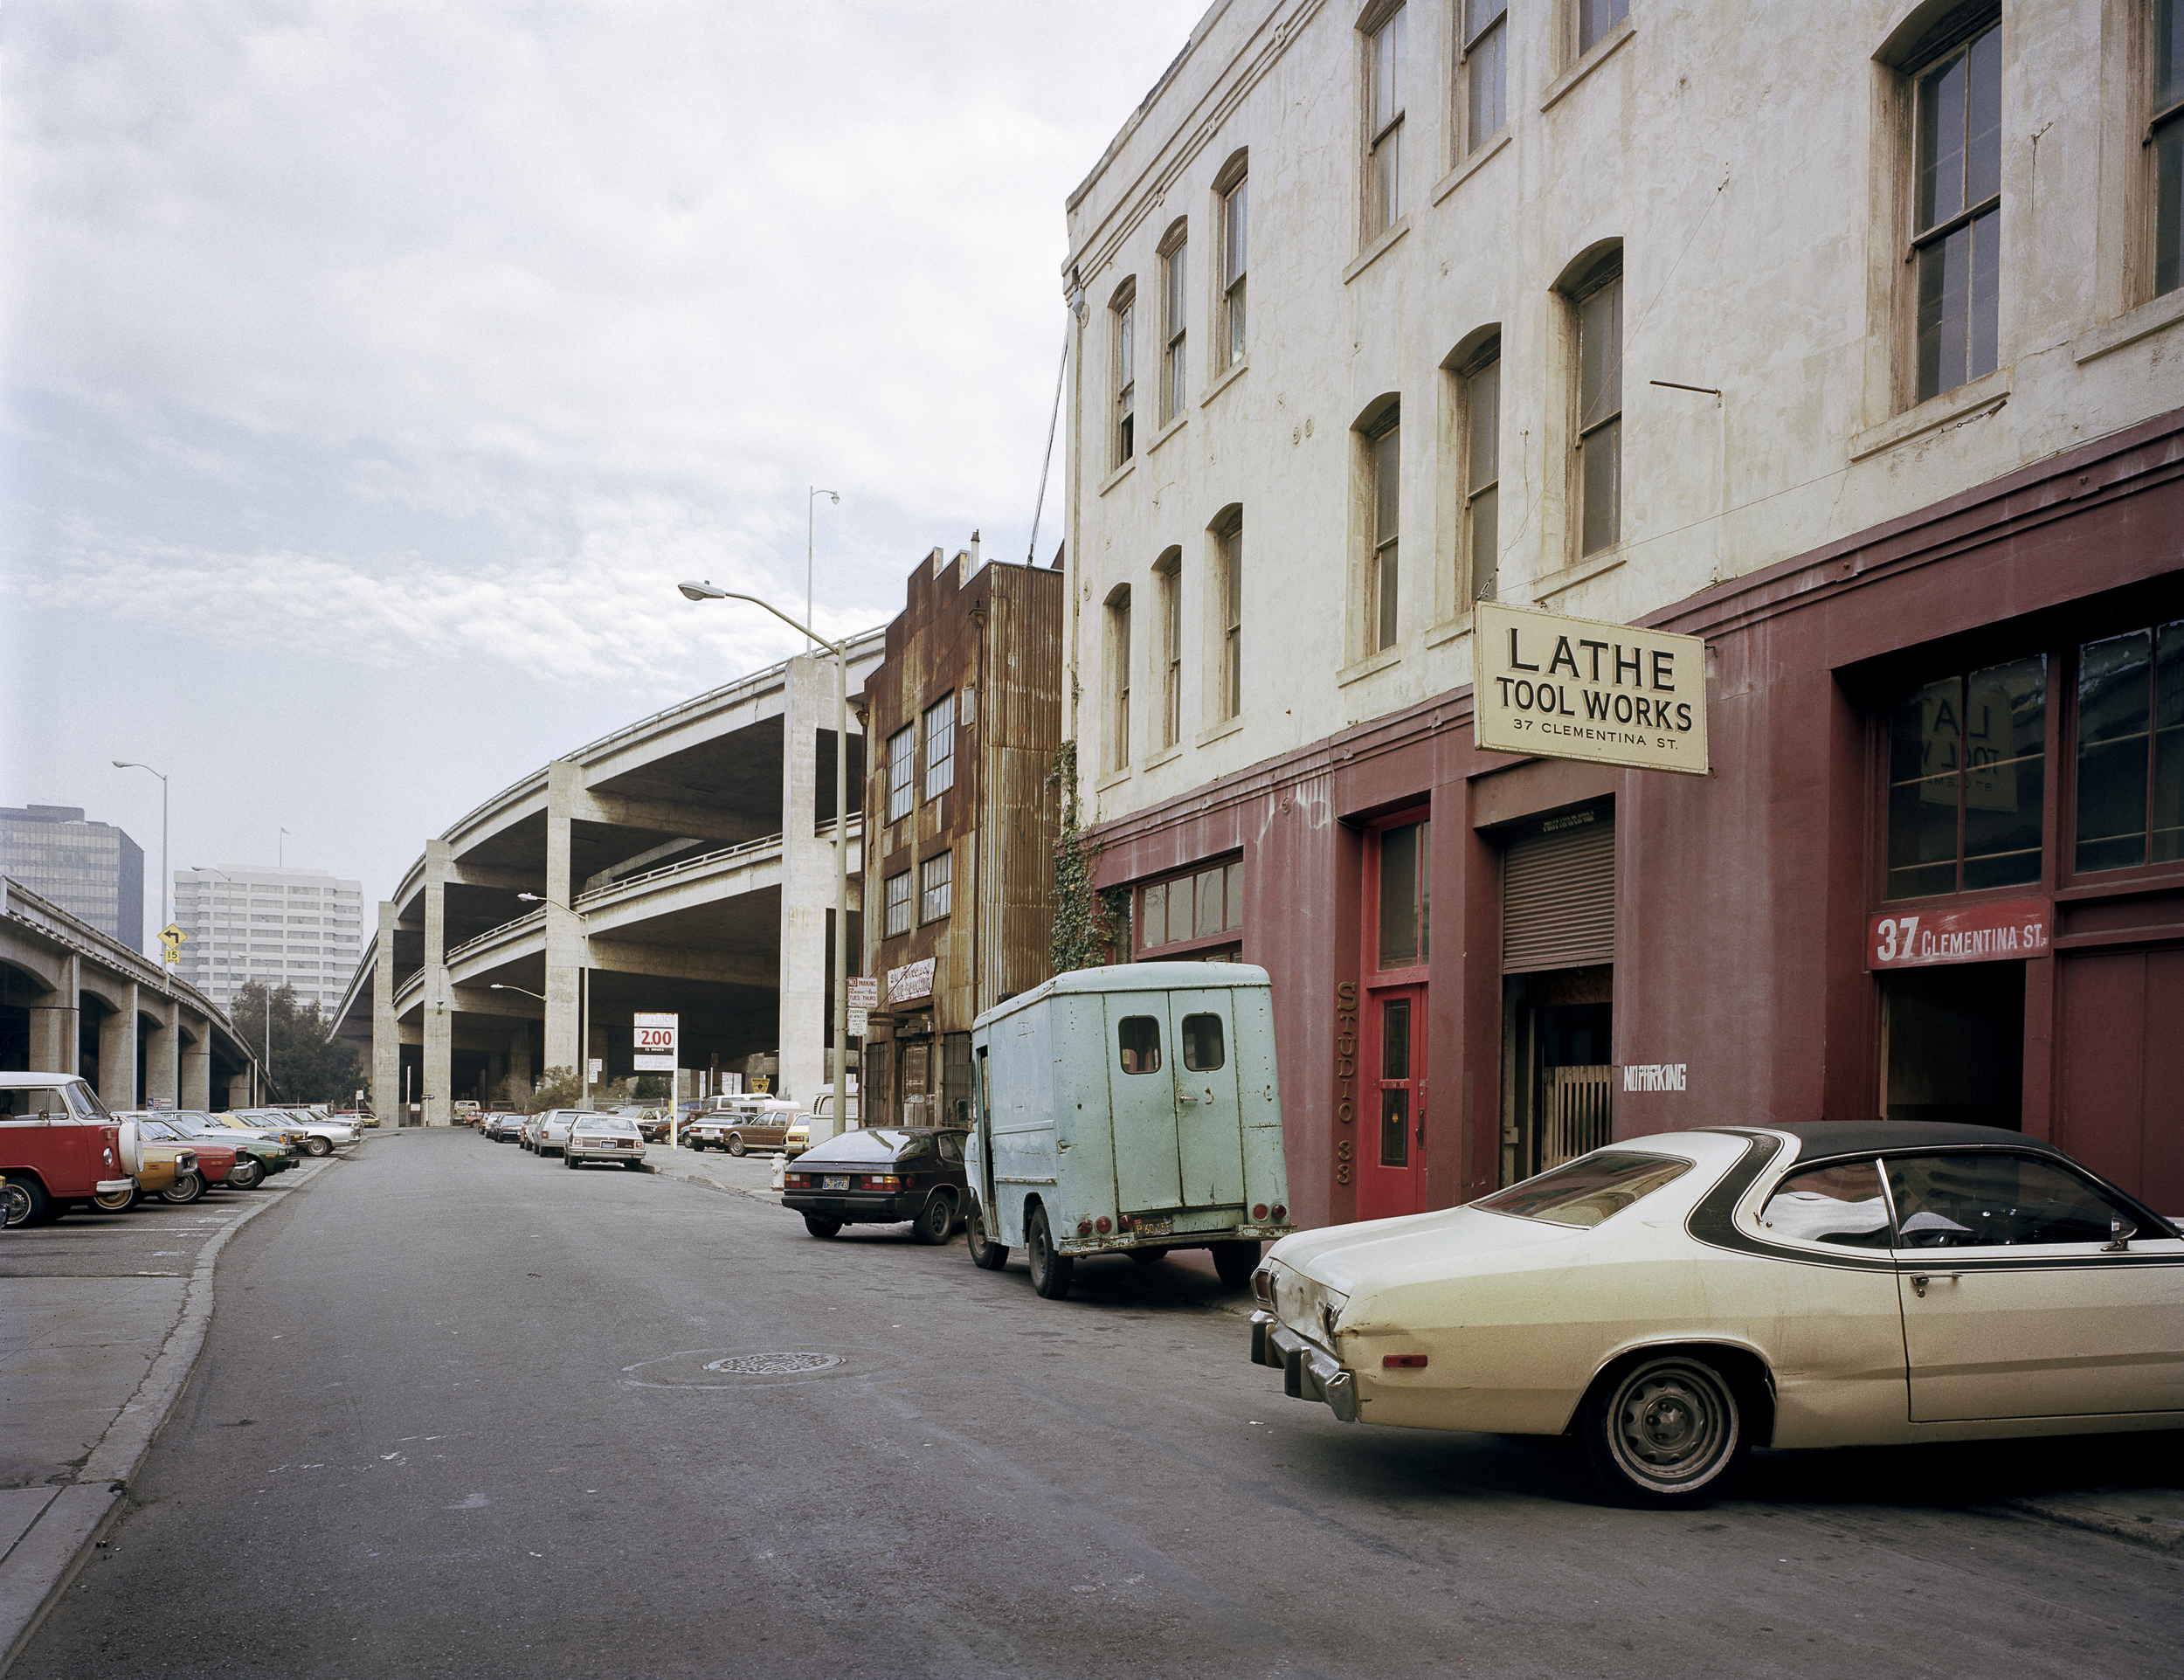 Lathe and Tool Works, 37 Clementina Street, 1981 Archival Pigment Print, 2016 16 x 20 inches, edition of 5 20 x 24 inches, edition of 2 30 x 40 inches, edition of 2